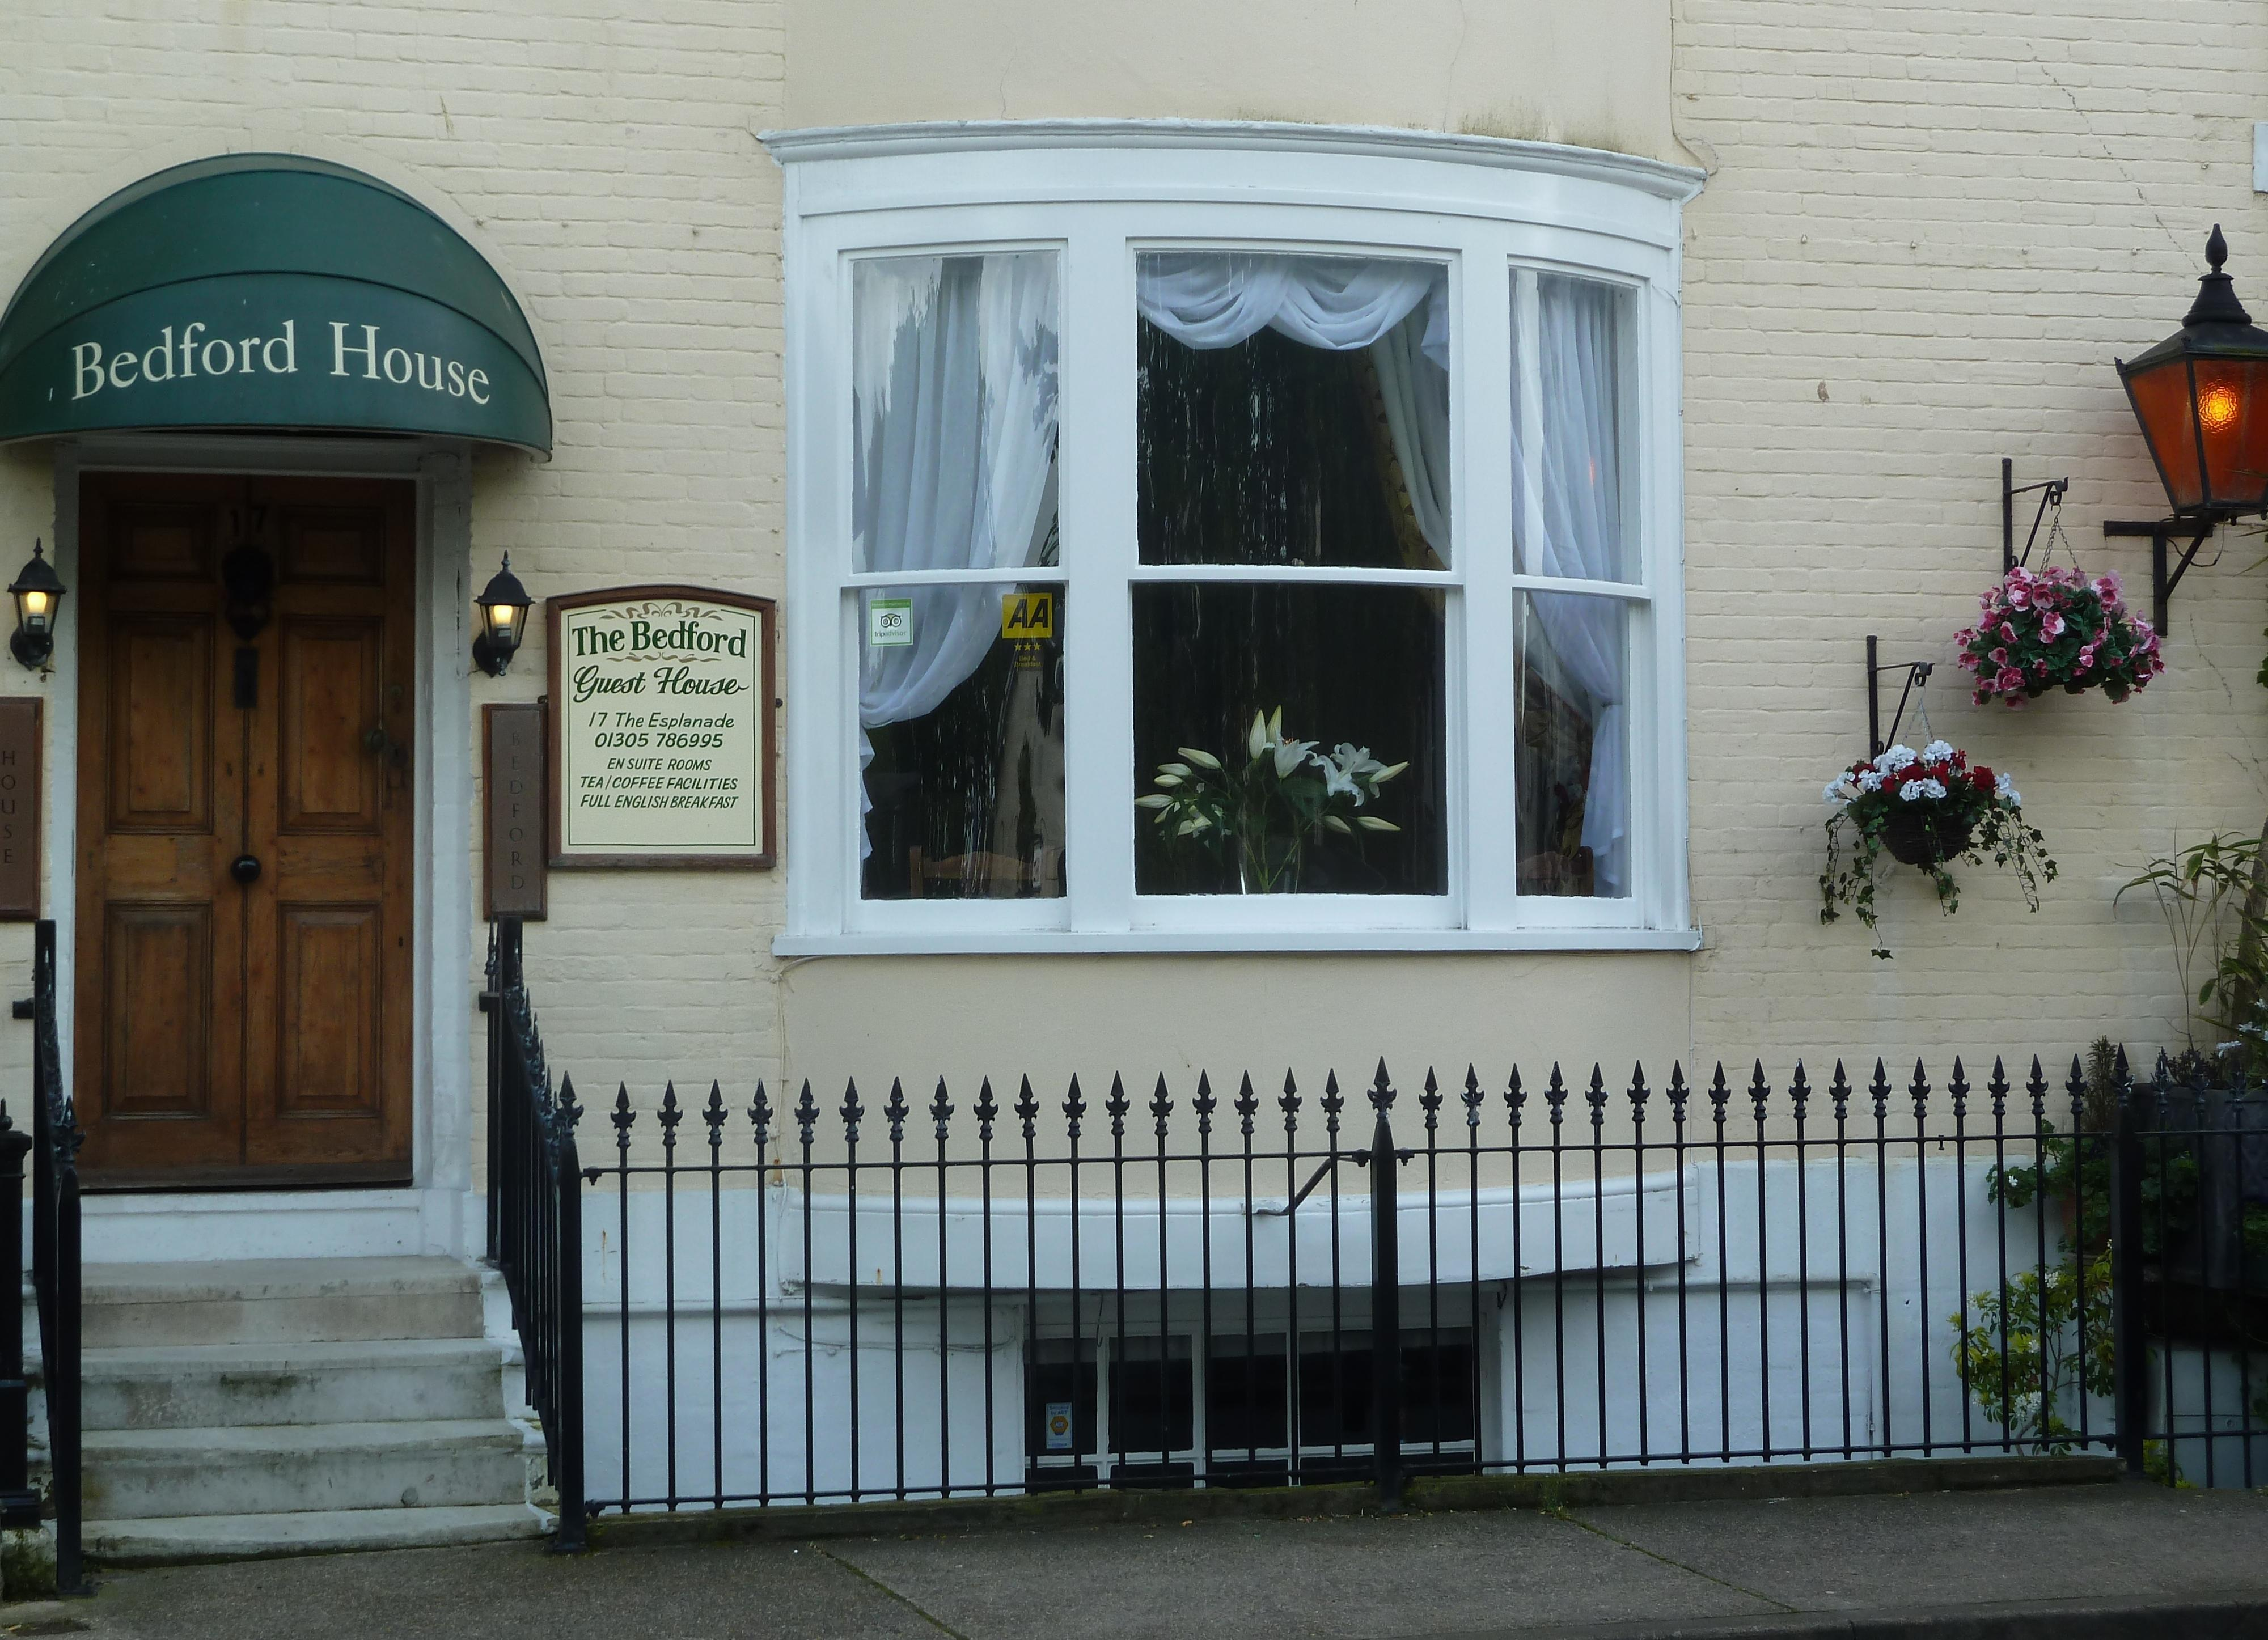 The Bedford Guest House